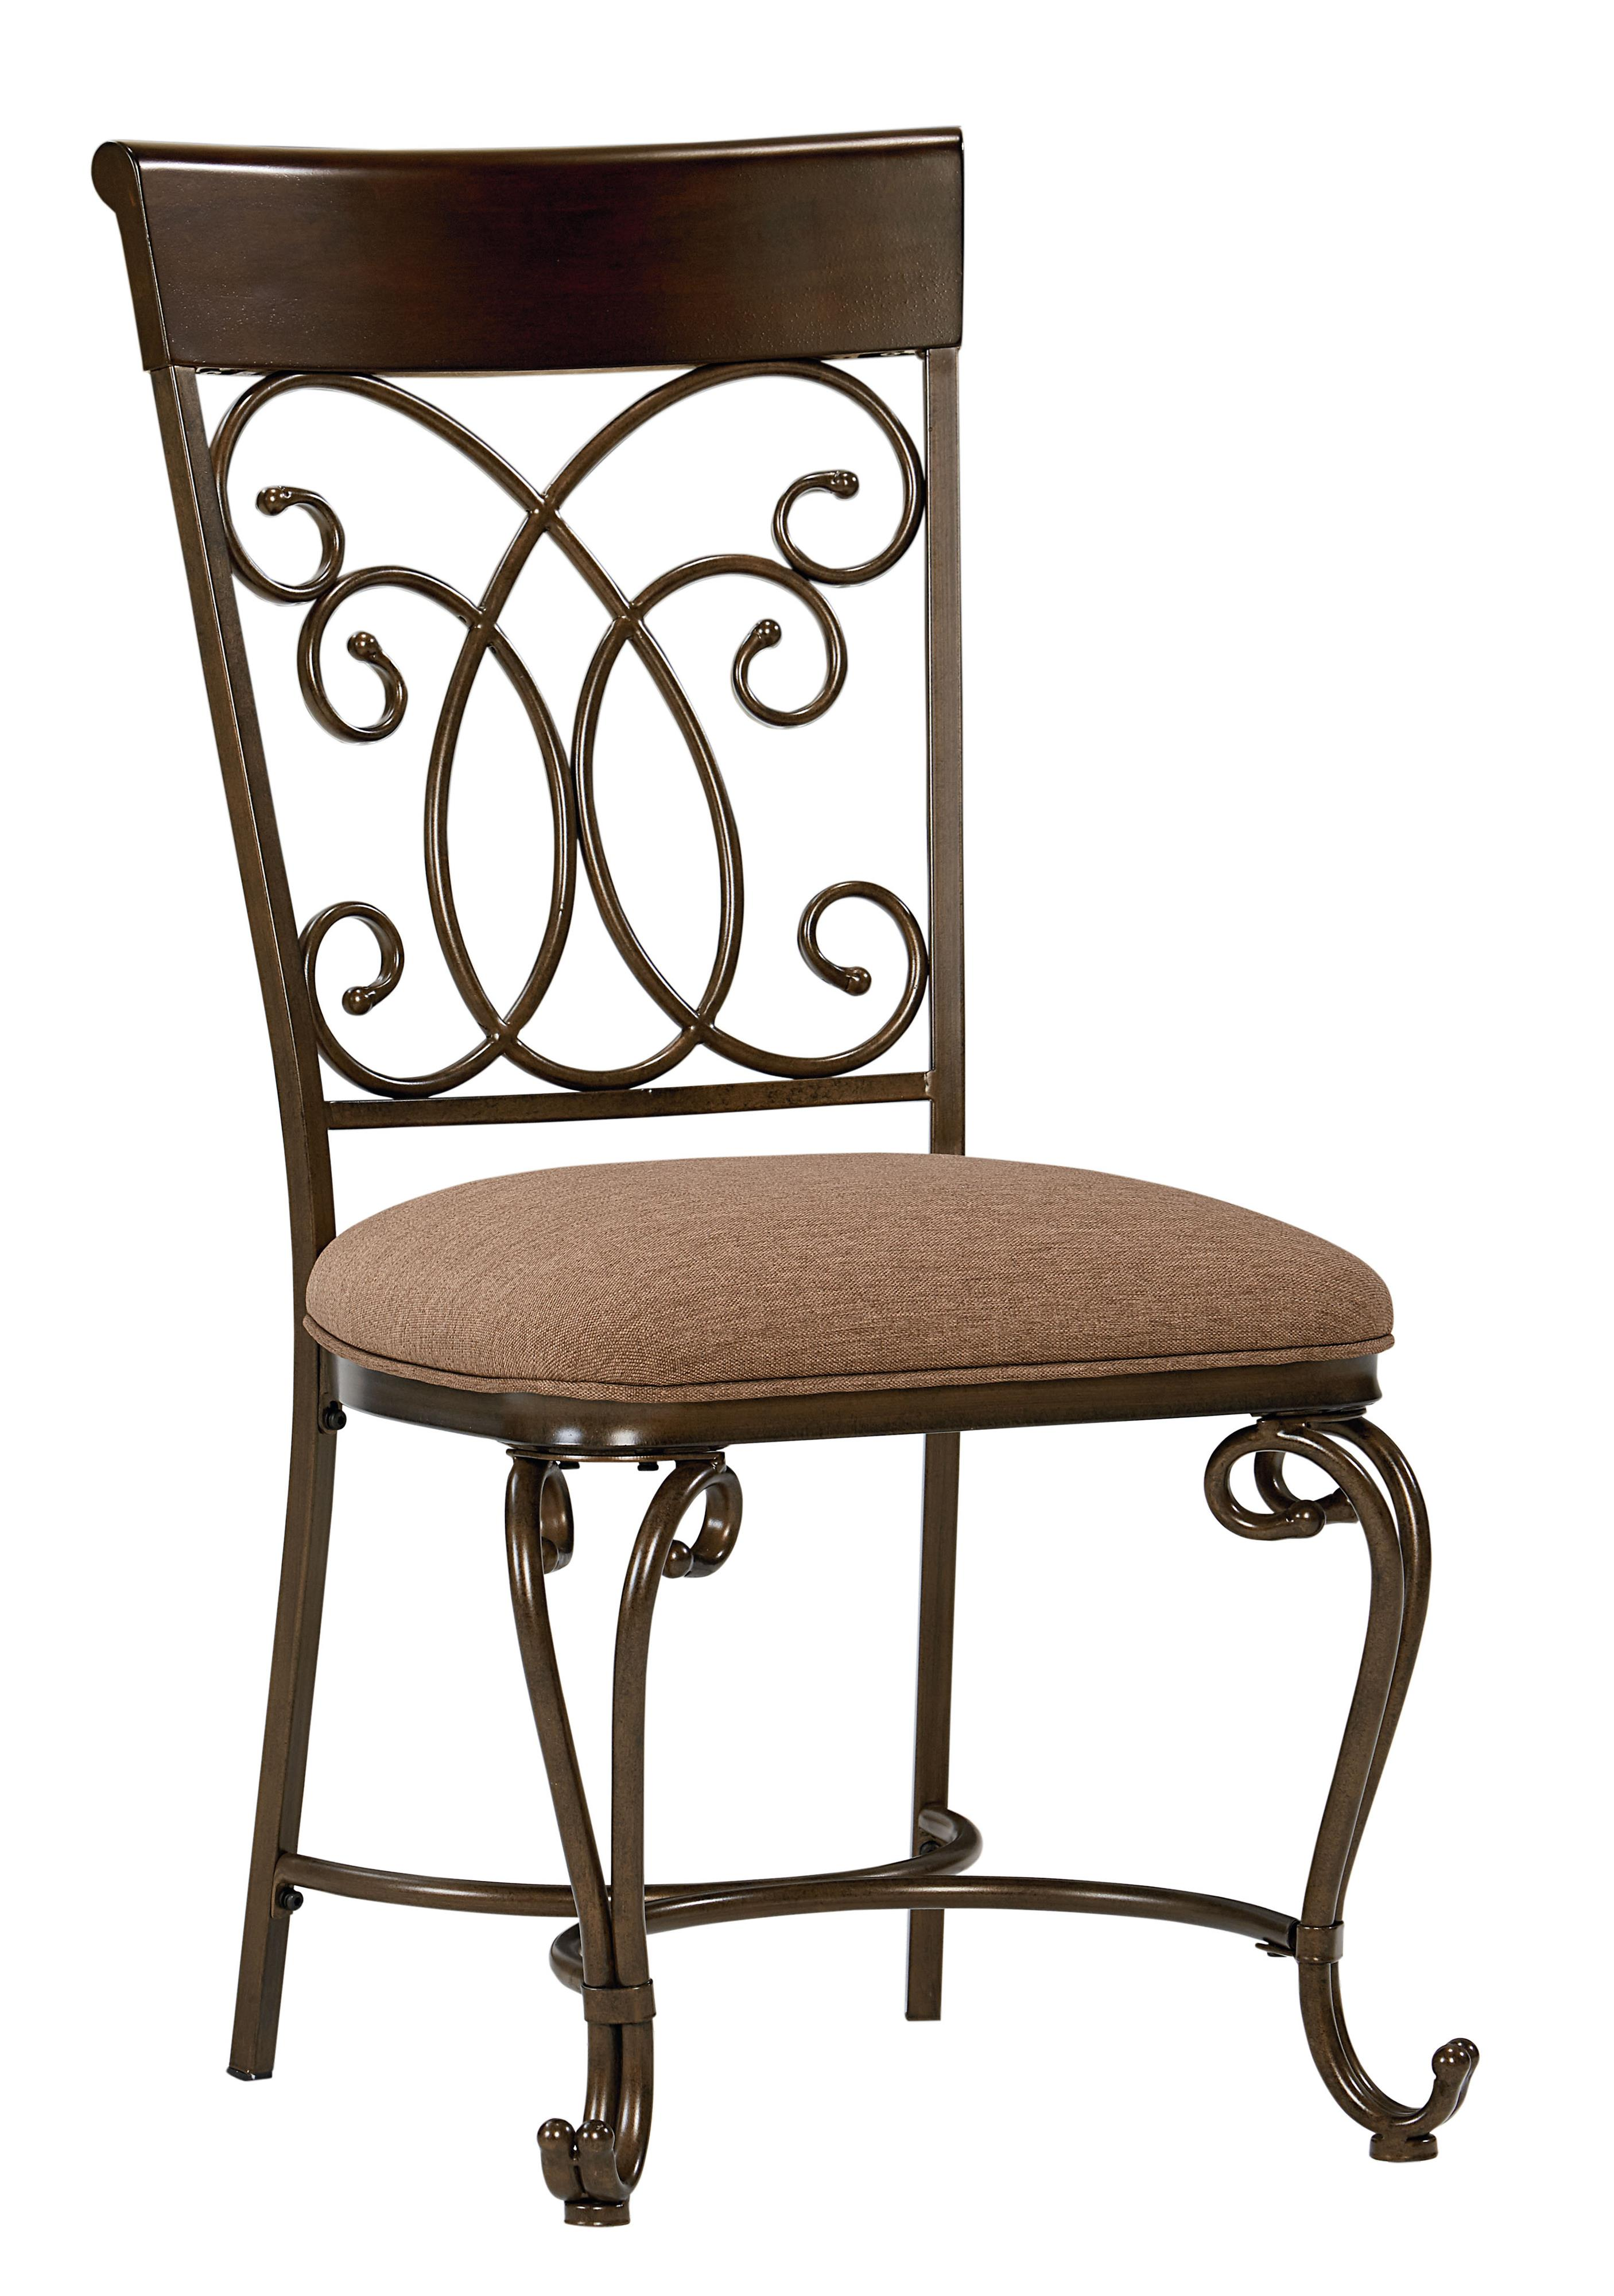 Round Table and Chair Set With Metal Scroll Detail by Standard